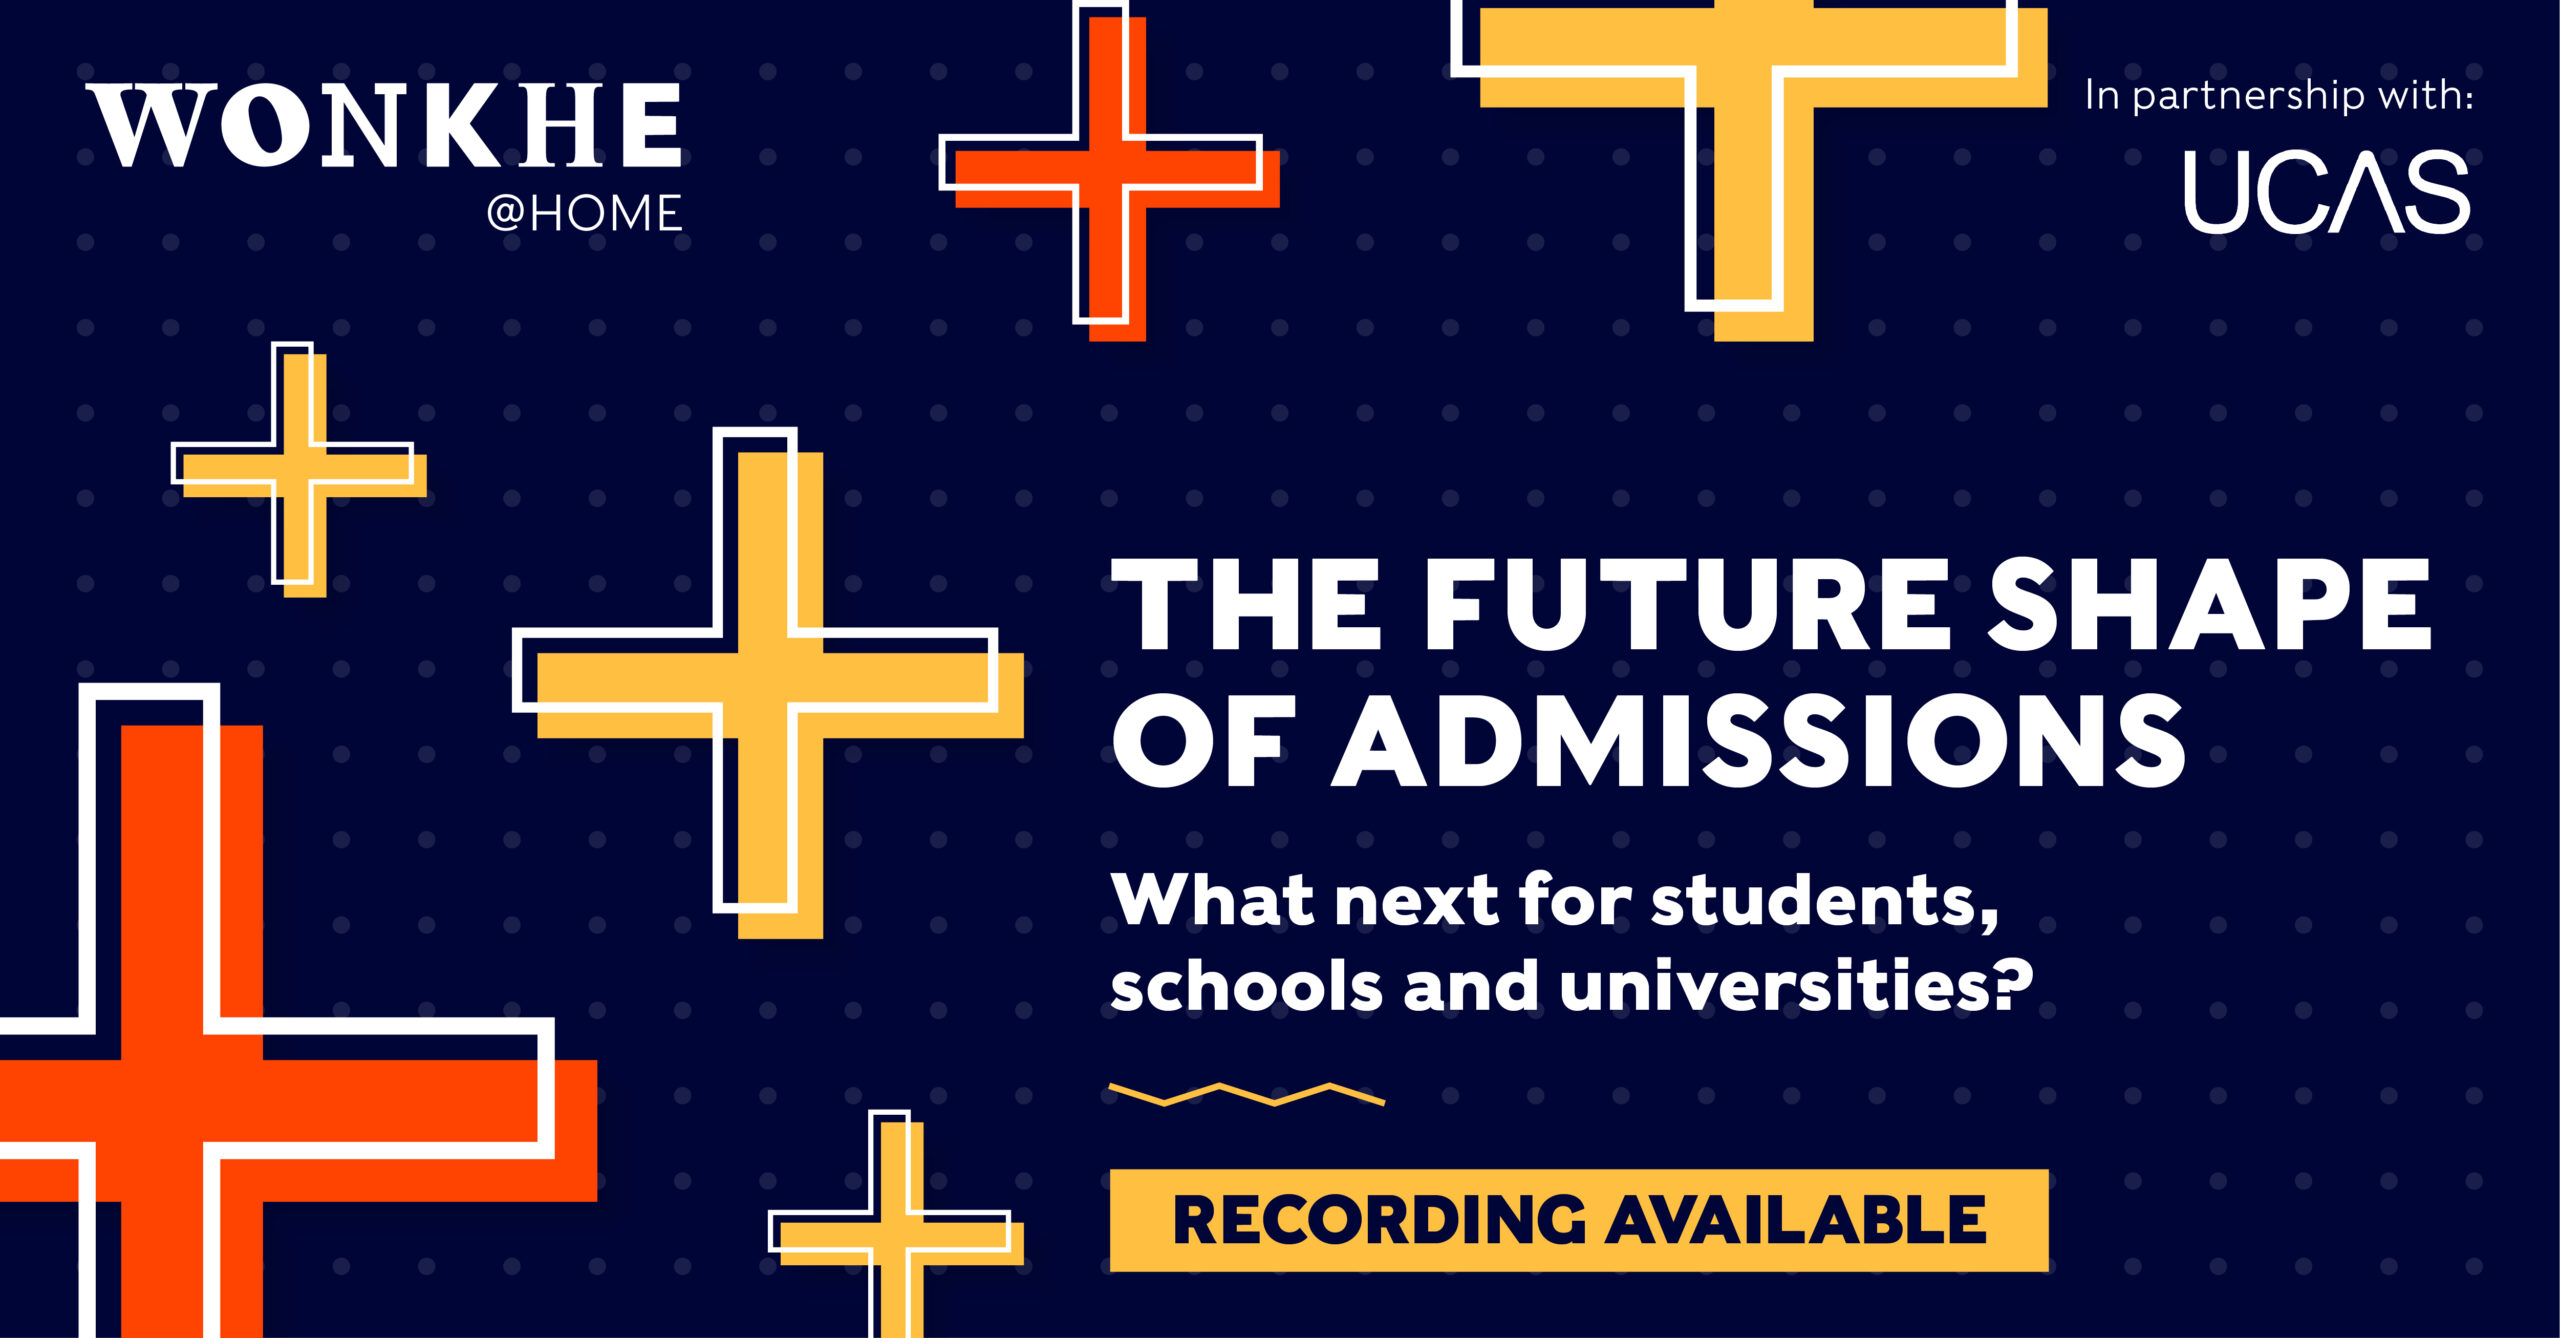 Image of Wonkhe @ Home: The future shape of admissions